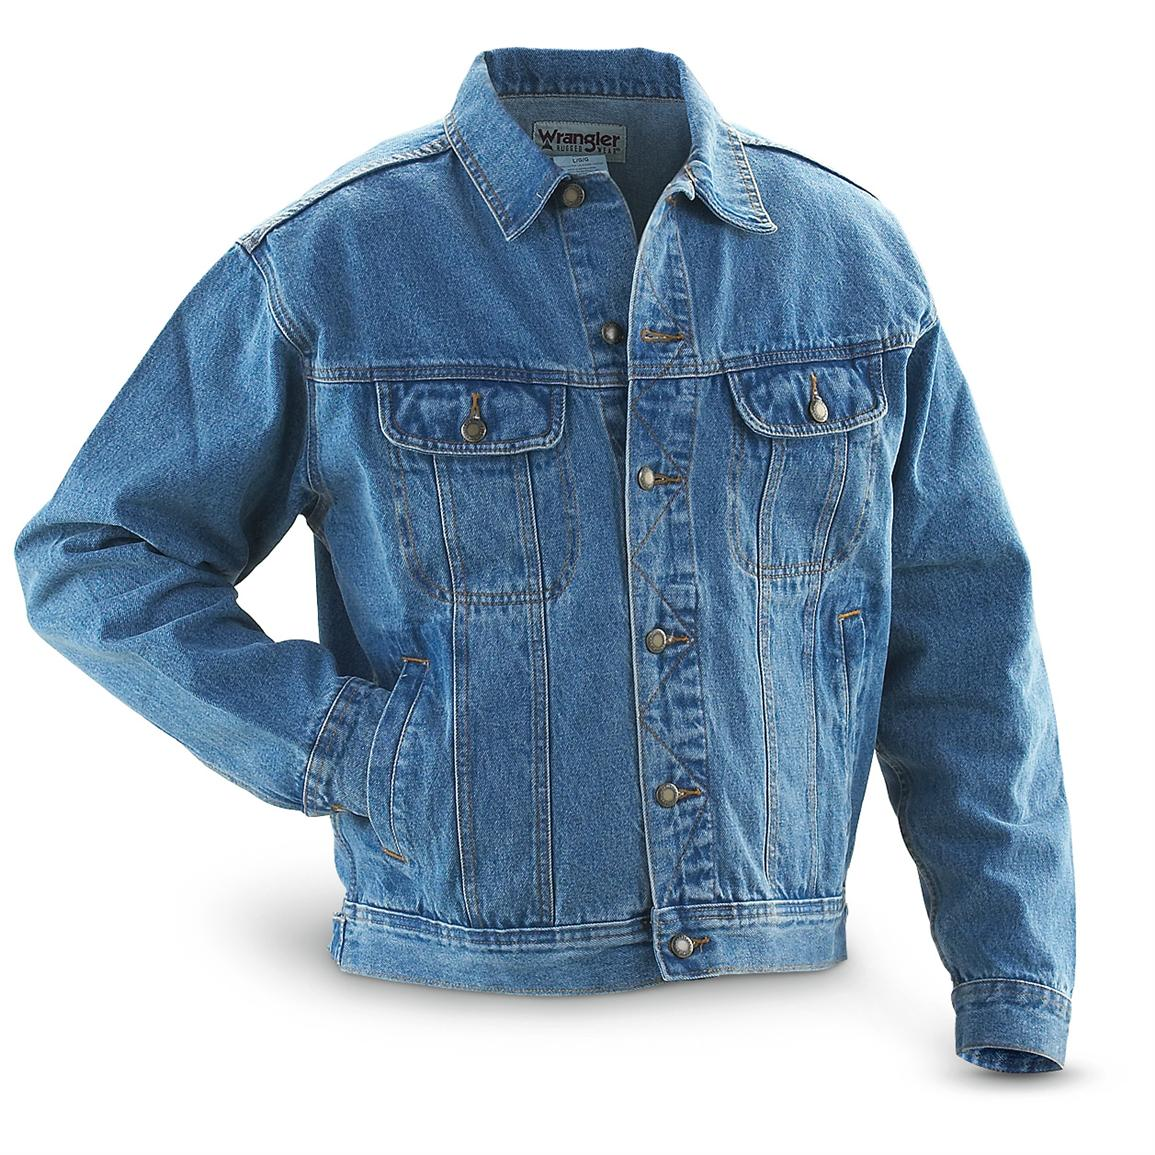 Denim Jackets Outerwear. Clothing. Women. Womens Coats & Jackets. Denim Jackets Outerwear. Showing 48 of results that match your query. Search Product Result. Product - Cover Girl Jeans Denim Jacket for Women Distressed Long Sleeve Size Small Denim Blue. Product Image. Price $ .